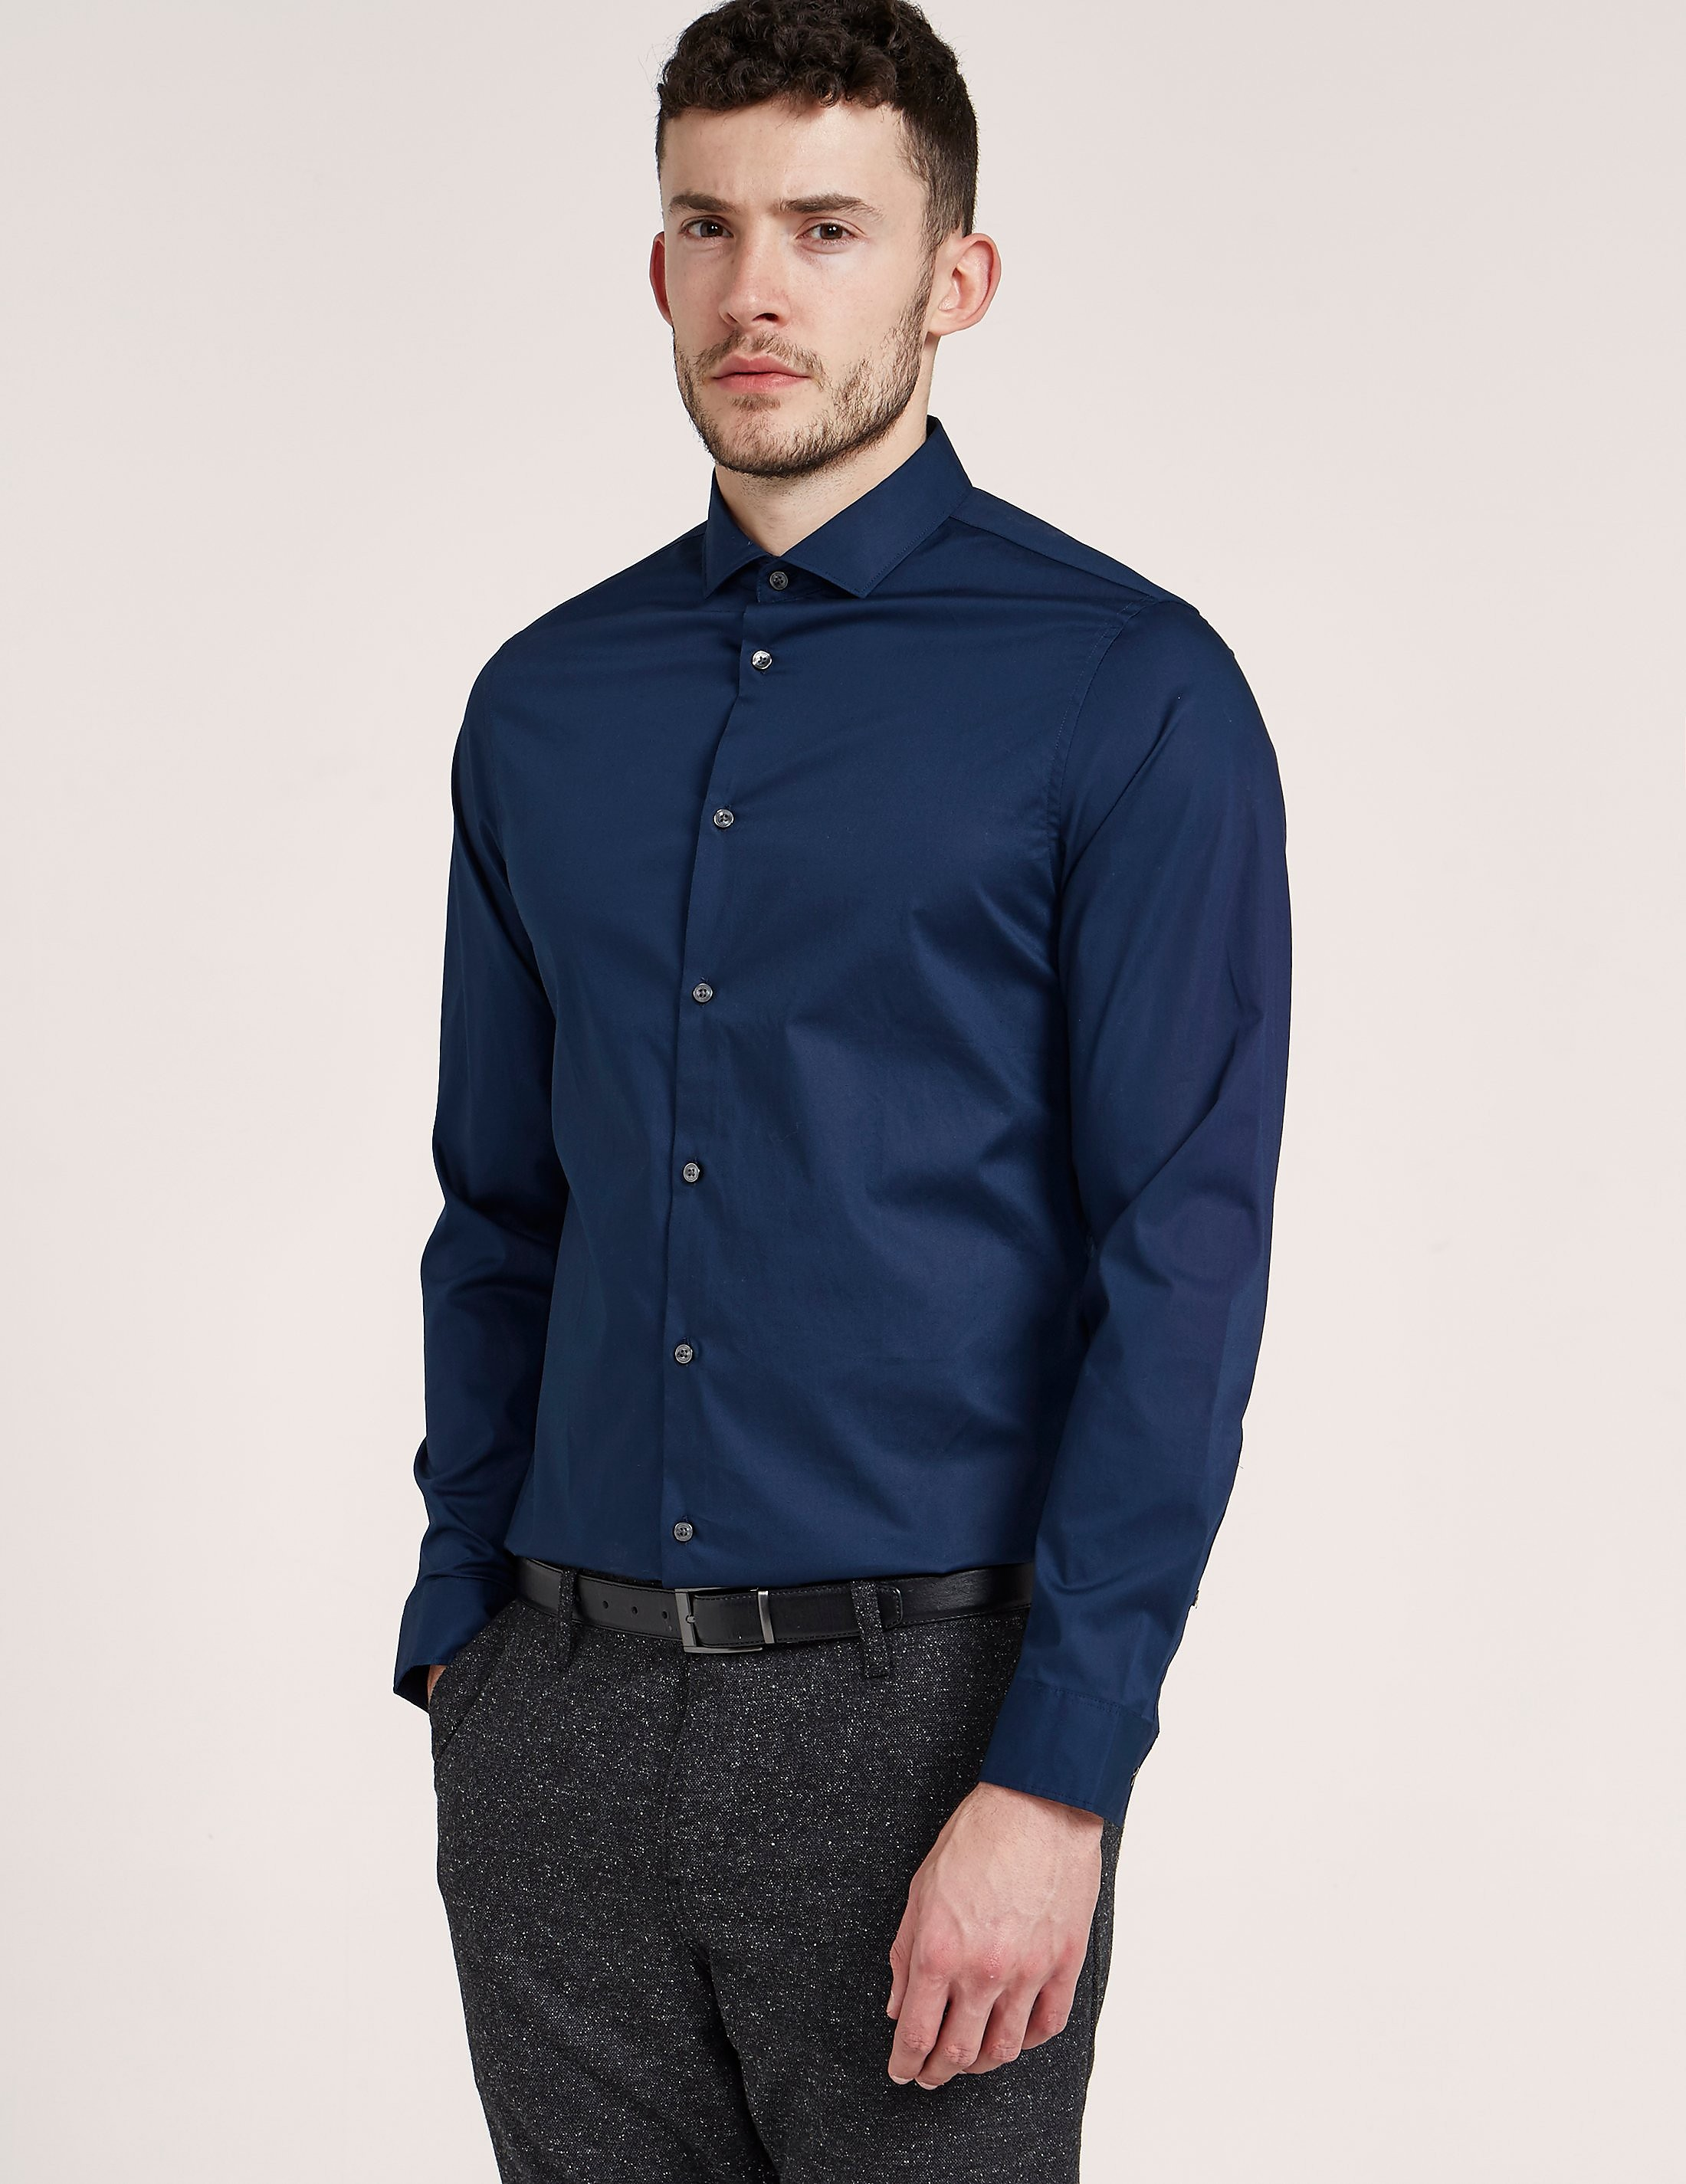 Michael Kors Slim Fit Cotton Stretch Long Sleeve Shirt